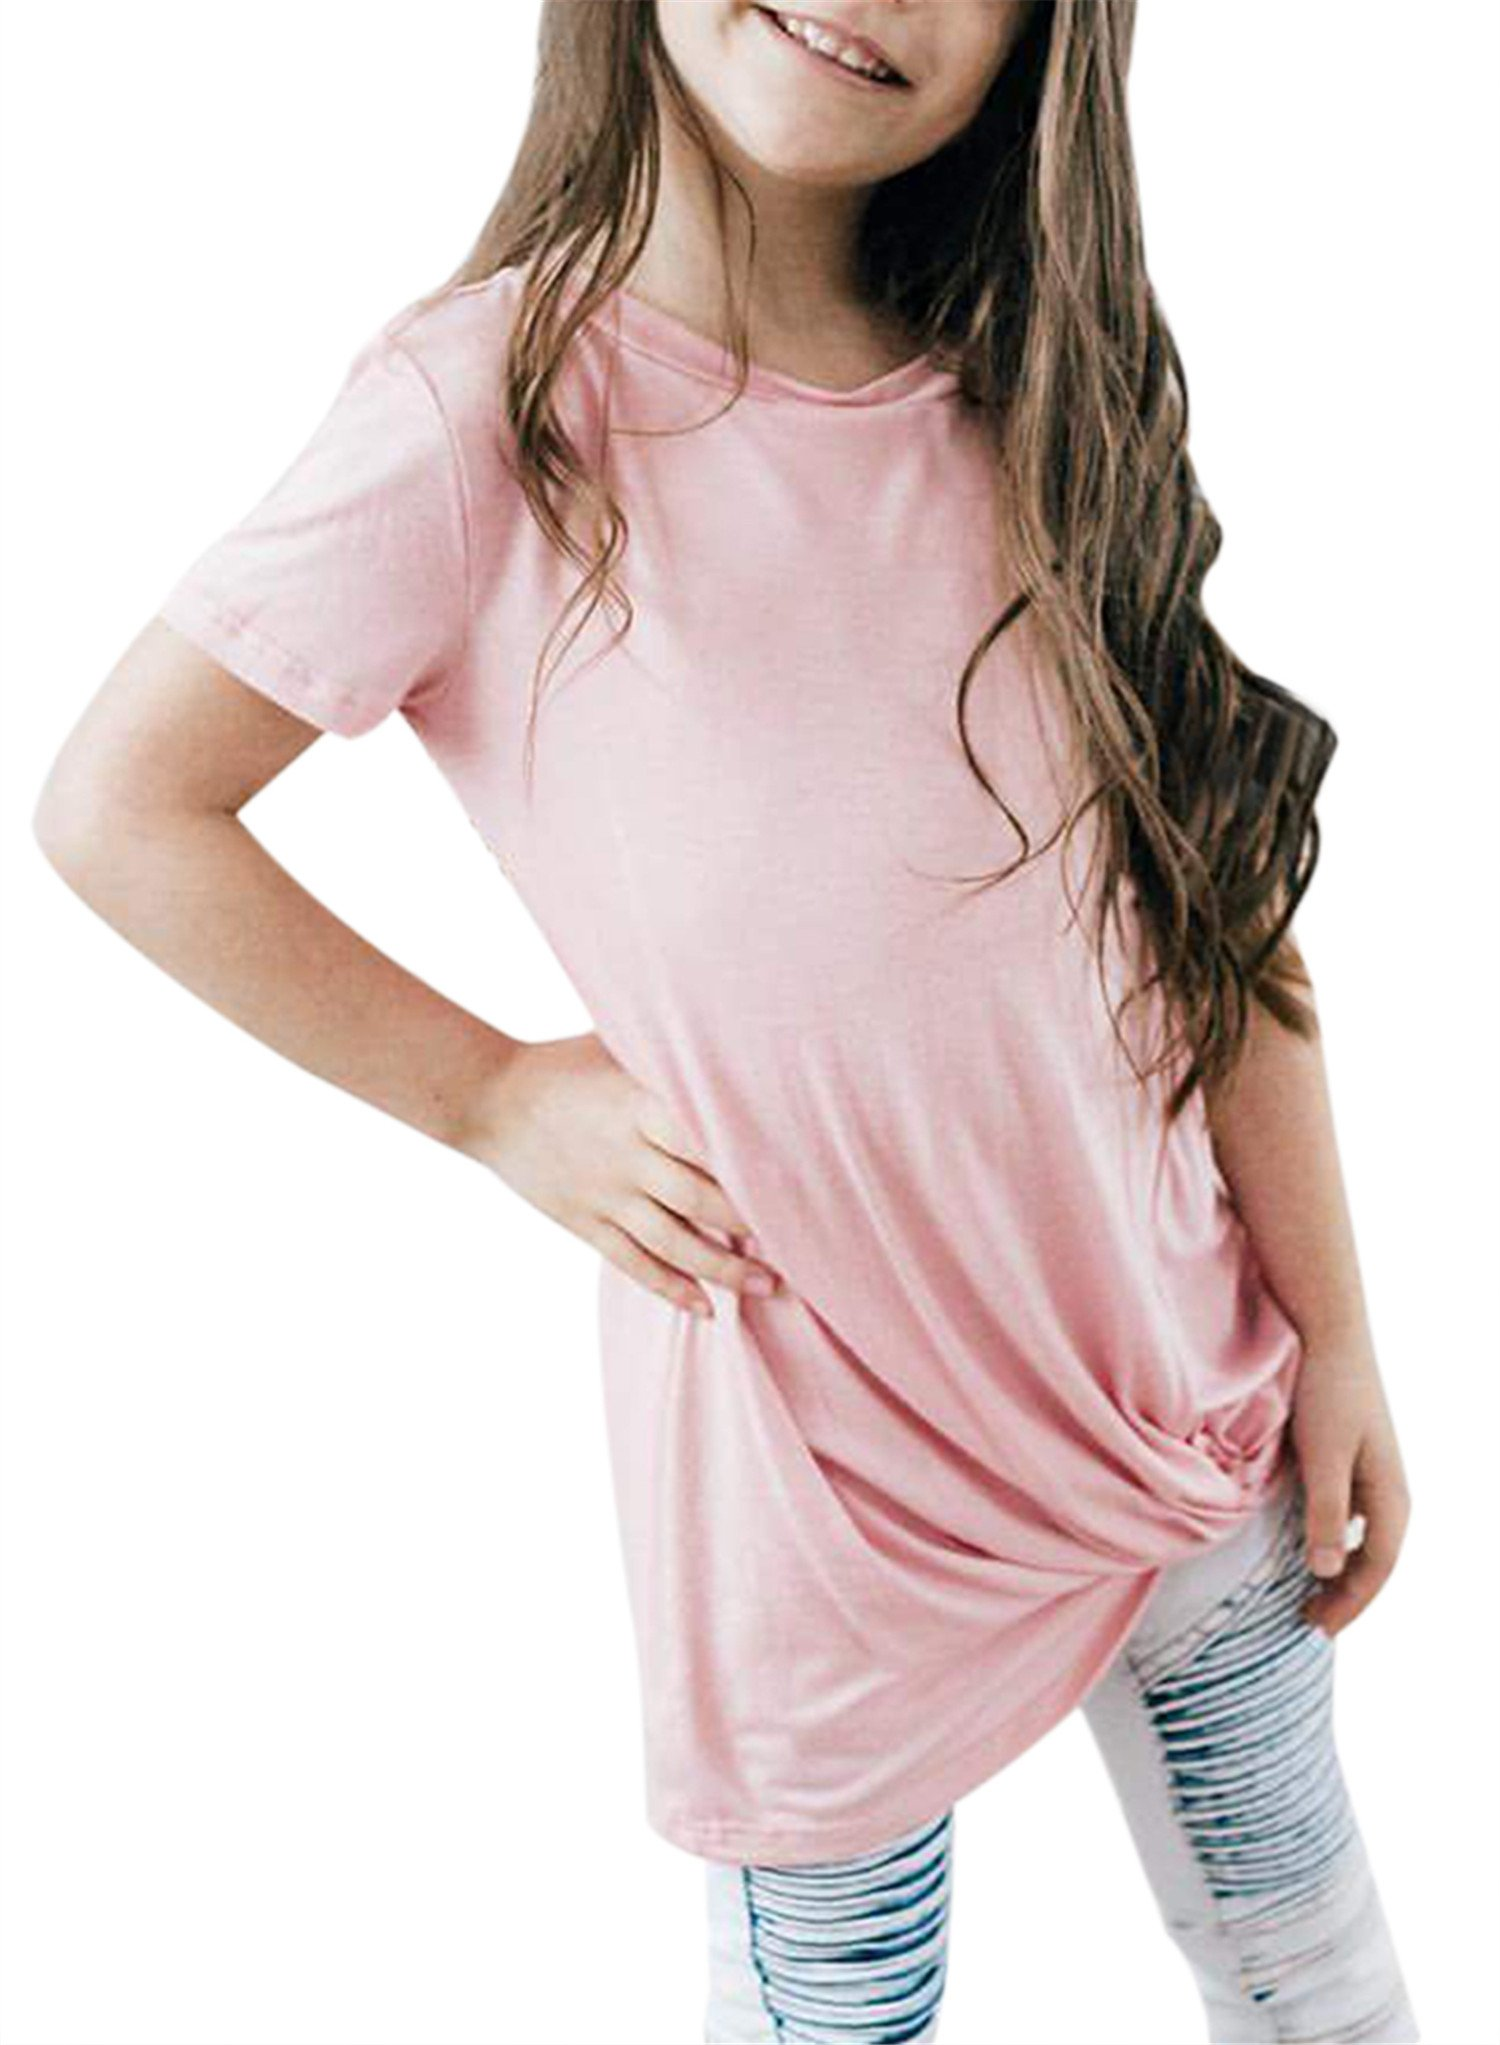 Bulawoo Girls Casual Loose Short Sleeve Tunic Tops Knot Front Big Girls Fashion Tops Tee Shirts Size 4-13 6-7 Years Pink